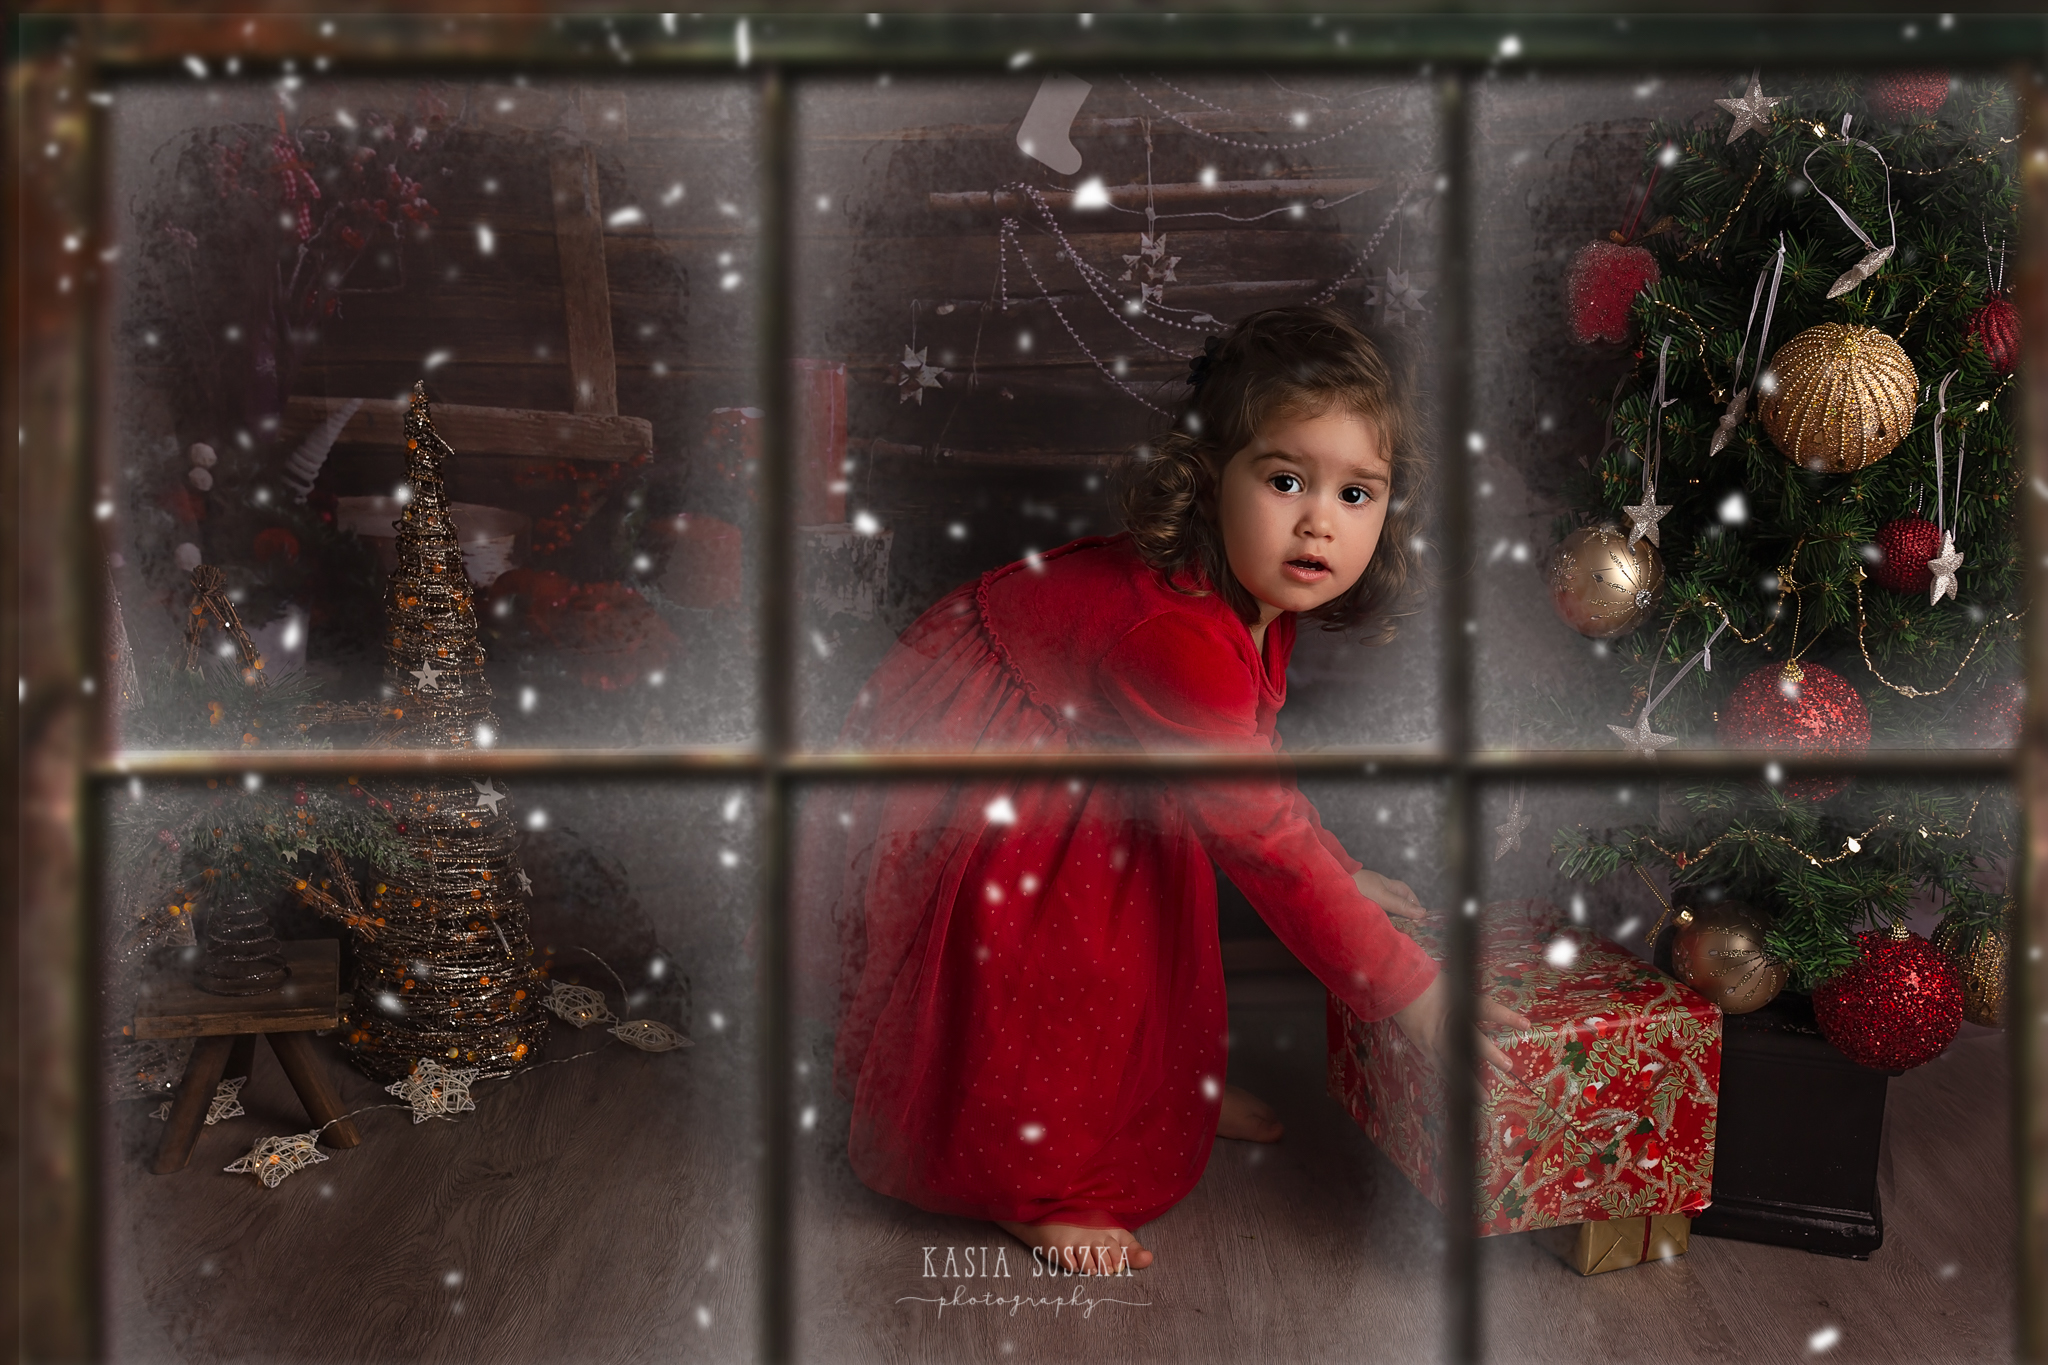 Child photographer Leeds, York, Bradford, Harrogate. Christmas Mini Sessions 2018 Leeds: beautiful little girl in a red dress checking presents under the Christmas tree.